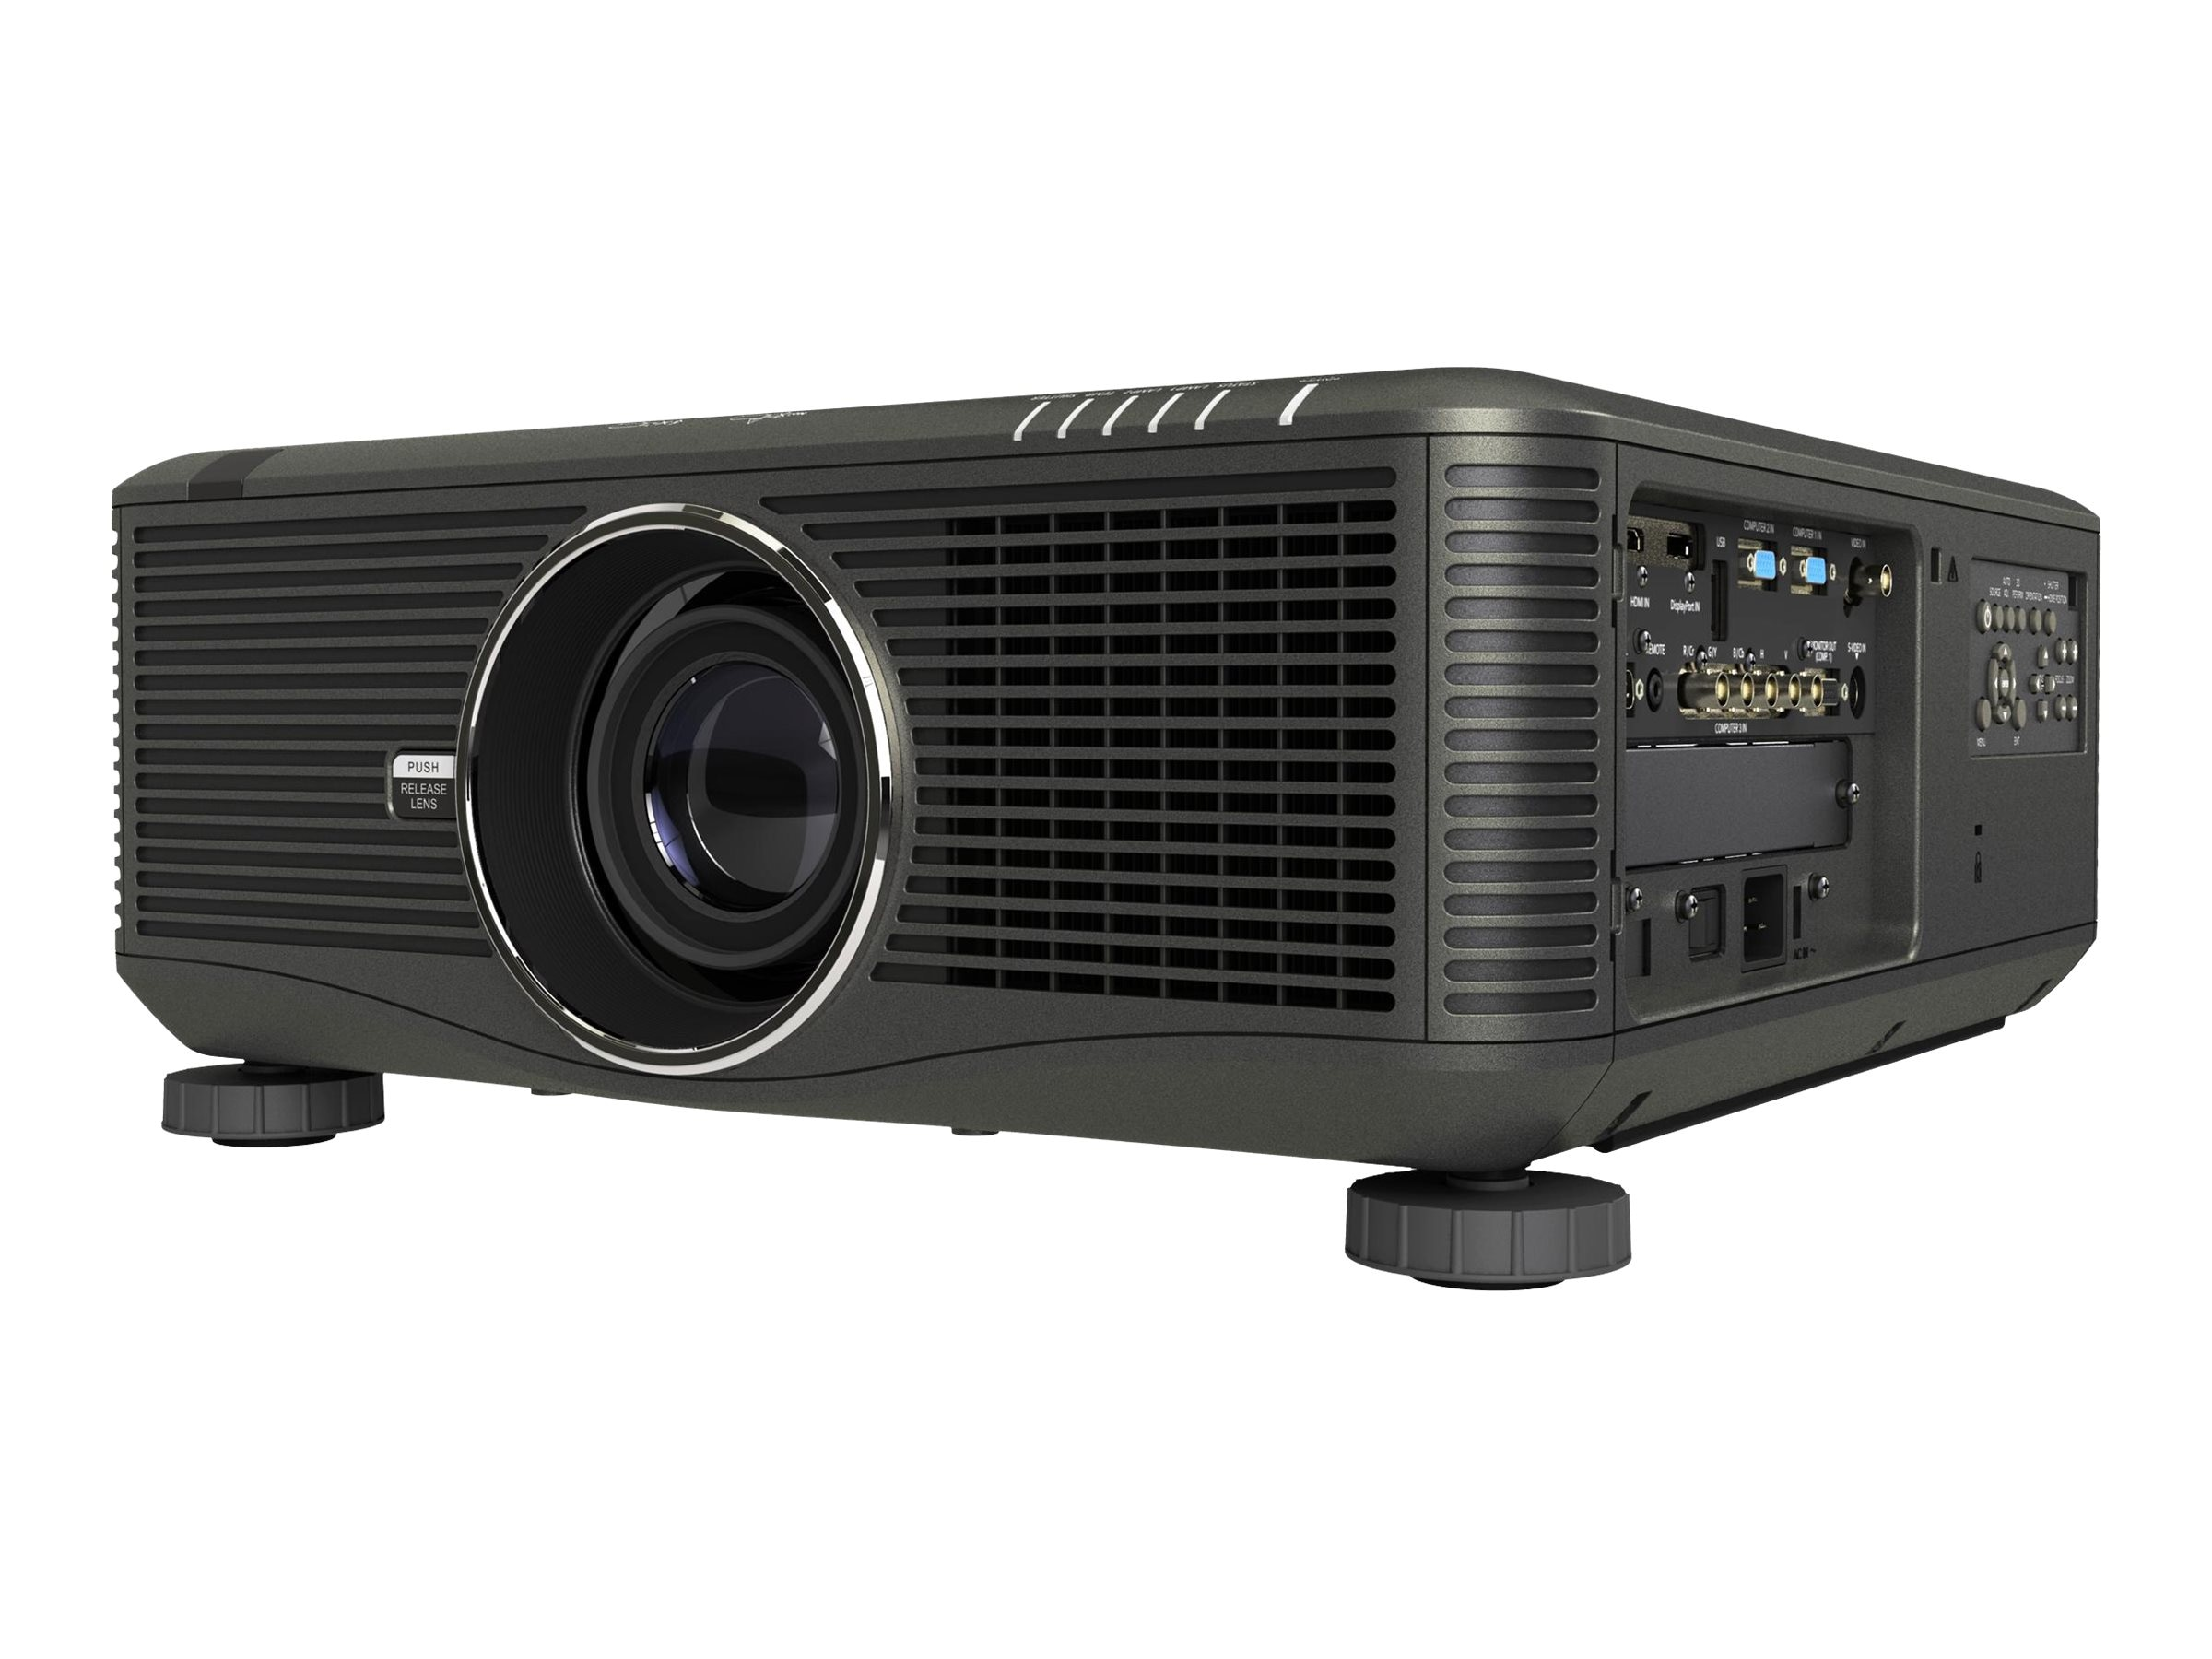 NEC NP-PX700W2 7000-lumen Widescreen Professional Installation Projector w  Lens, NP-PX700W2, 17706253, Projectors